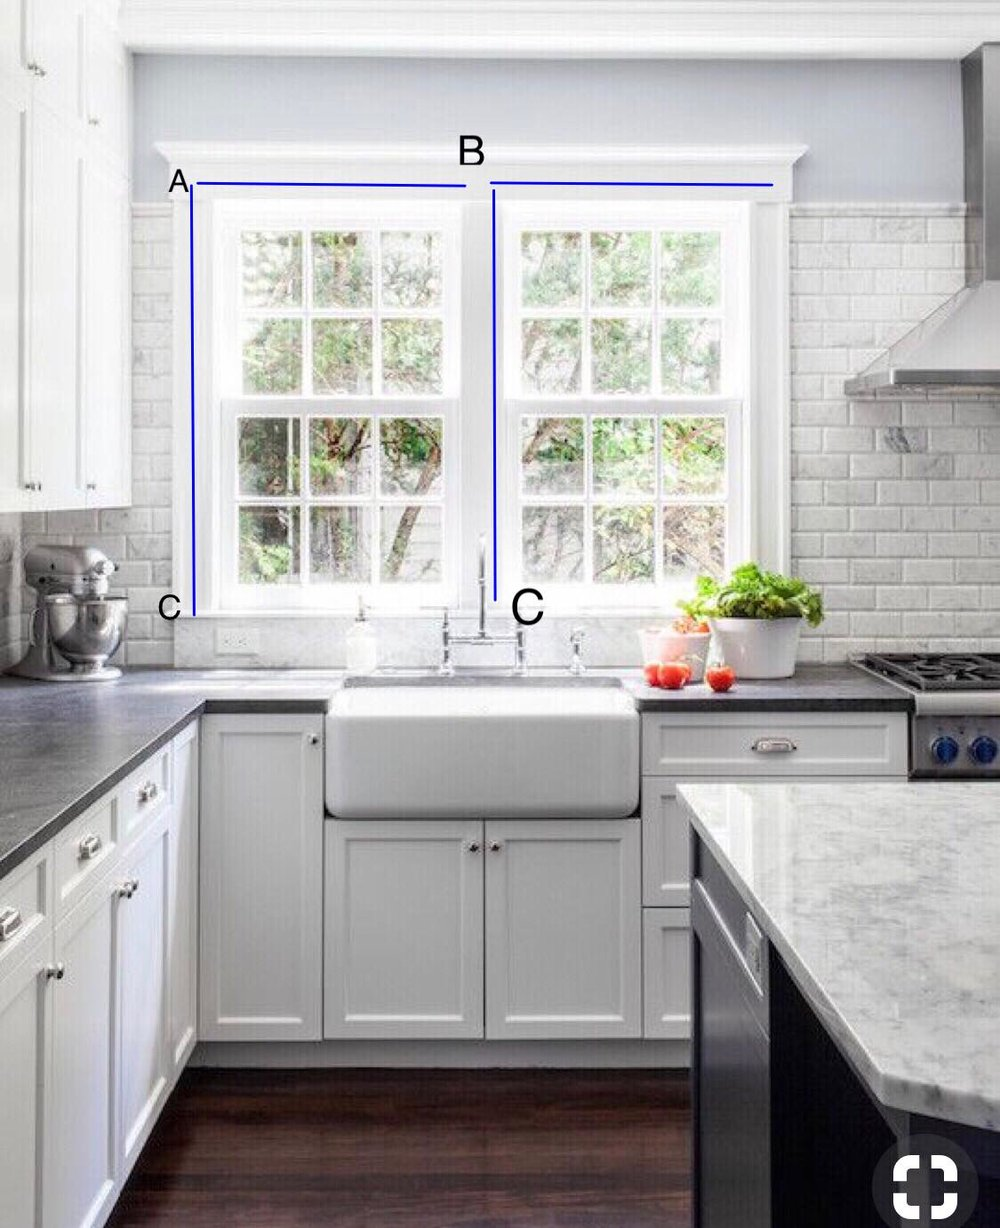 Outside mounted roman shades. Leave a little bit of space in between windows. Make sure there is equal space/trim on the left and right of the double window. Measure A to B for width of both shades. Measure A to C for length of both shades. Mount shade on trim above glass. This can be any place on trim that you'd like. Measure down to the sill.